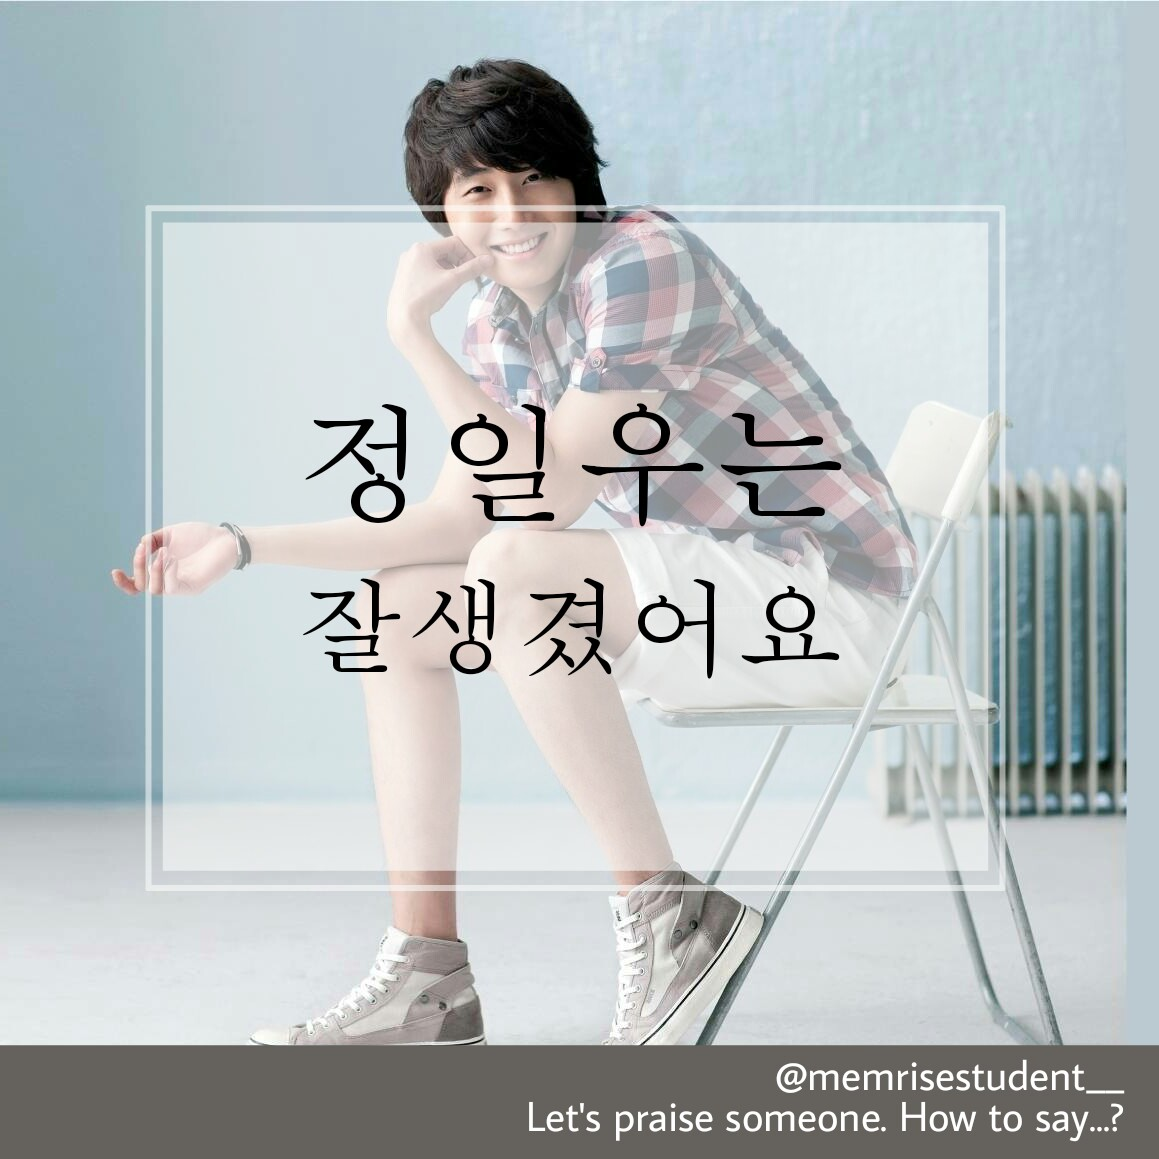 How to say in Korean, Jung Il Woo is handsome?